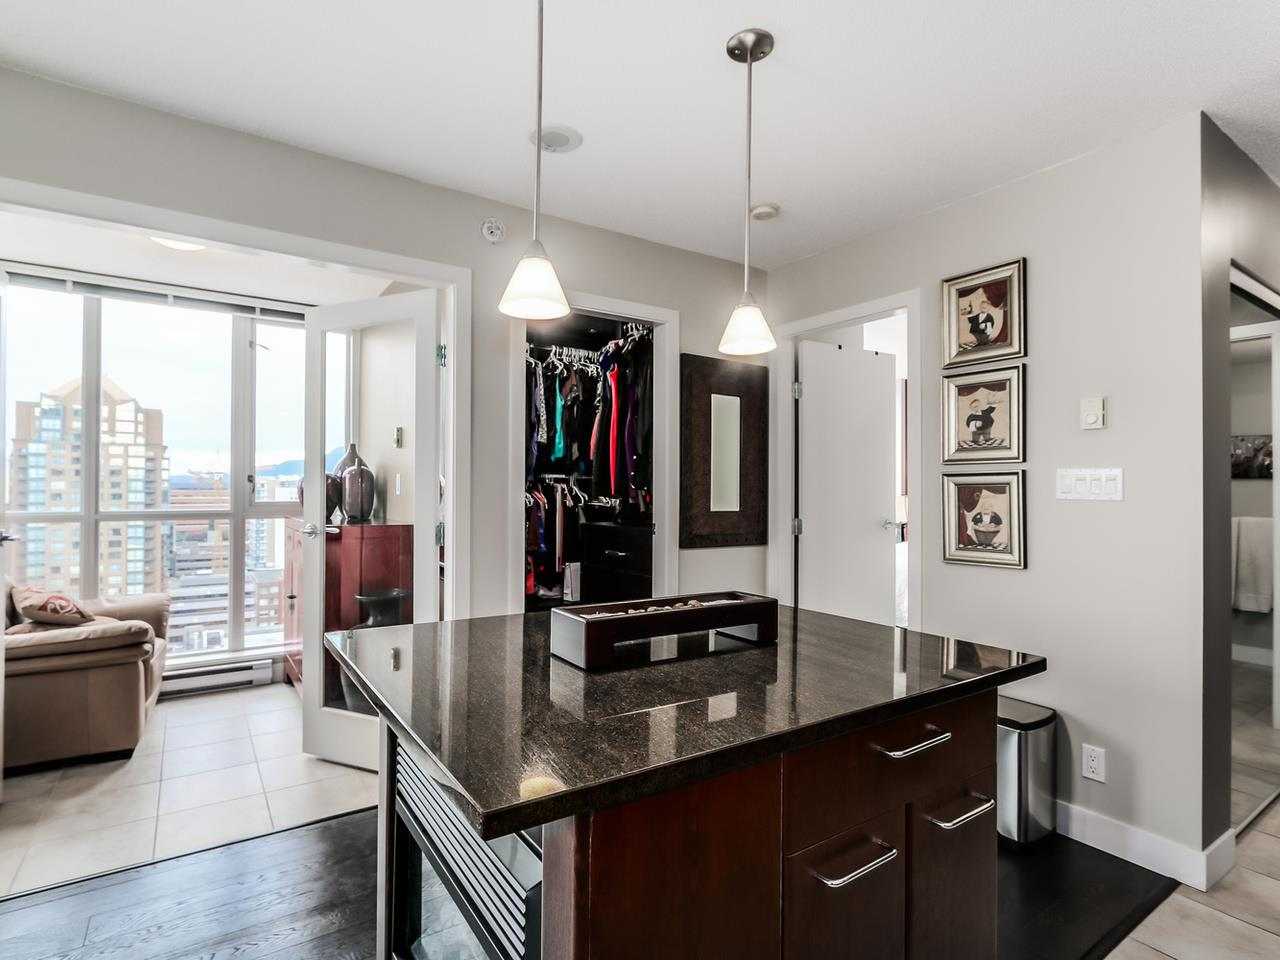 Photo 8: 2308 1155 SEYMOUR STREET in Vancouver: Downtown VW Condo for sale (Vancouver West)  : MLS® # R2026499